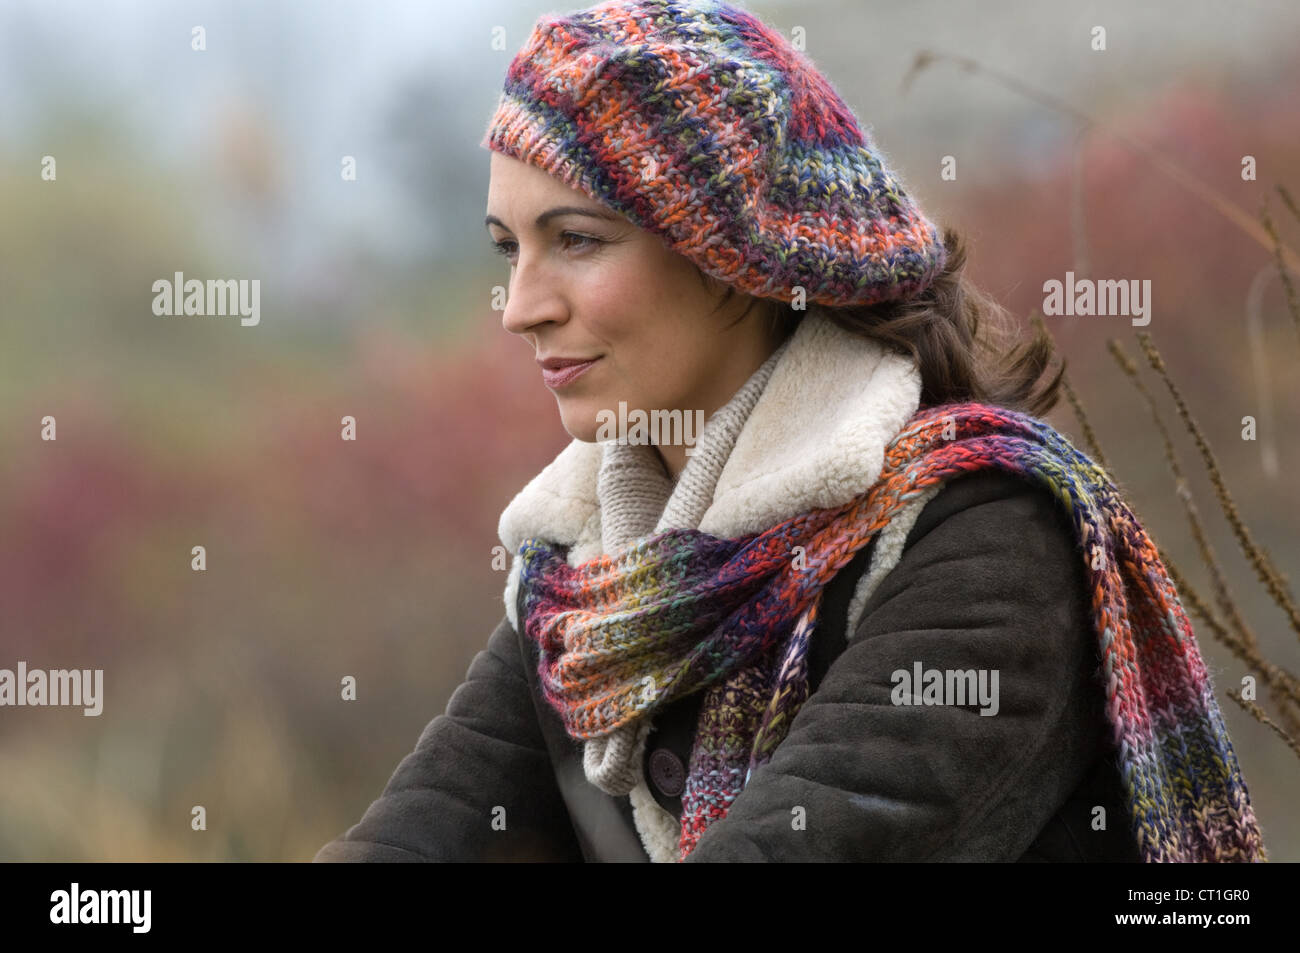 Woman wearing knitted hat and scarf - Stock Image